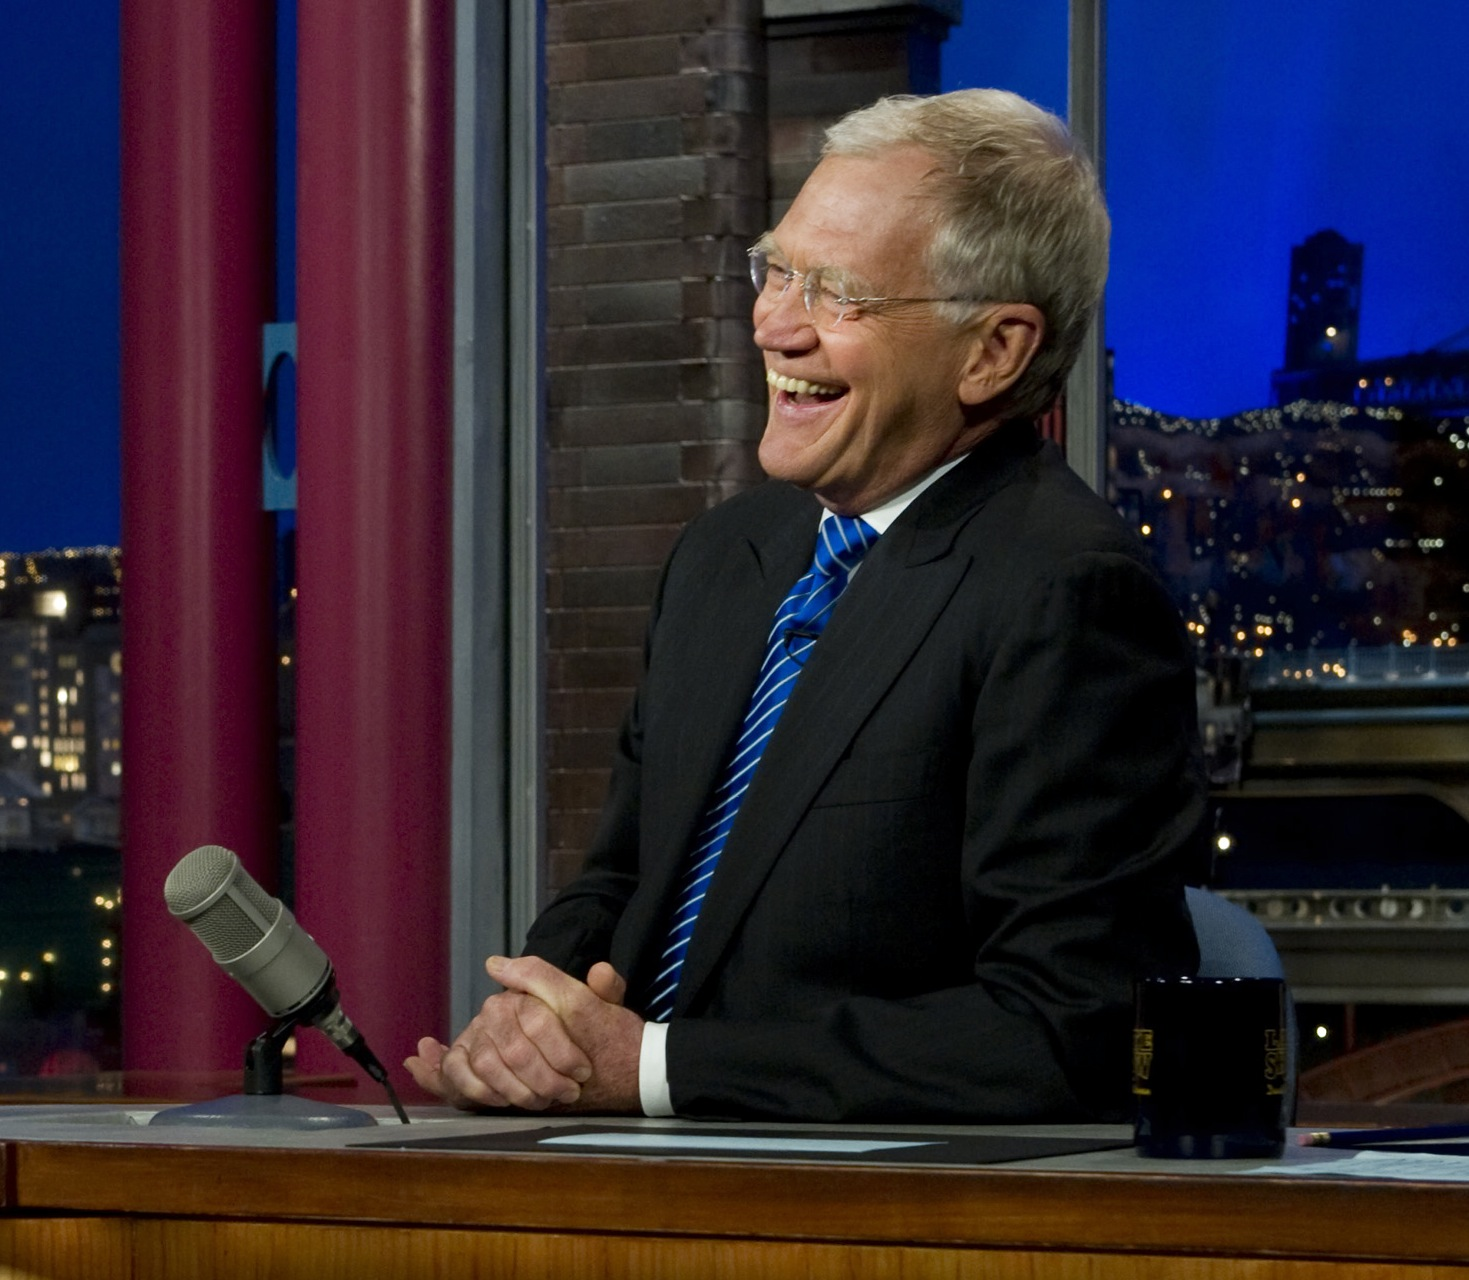 RE DAVID – LETTERMAN SHOW, L'ORA DELL'ADDIO